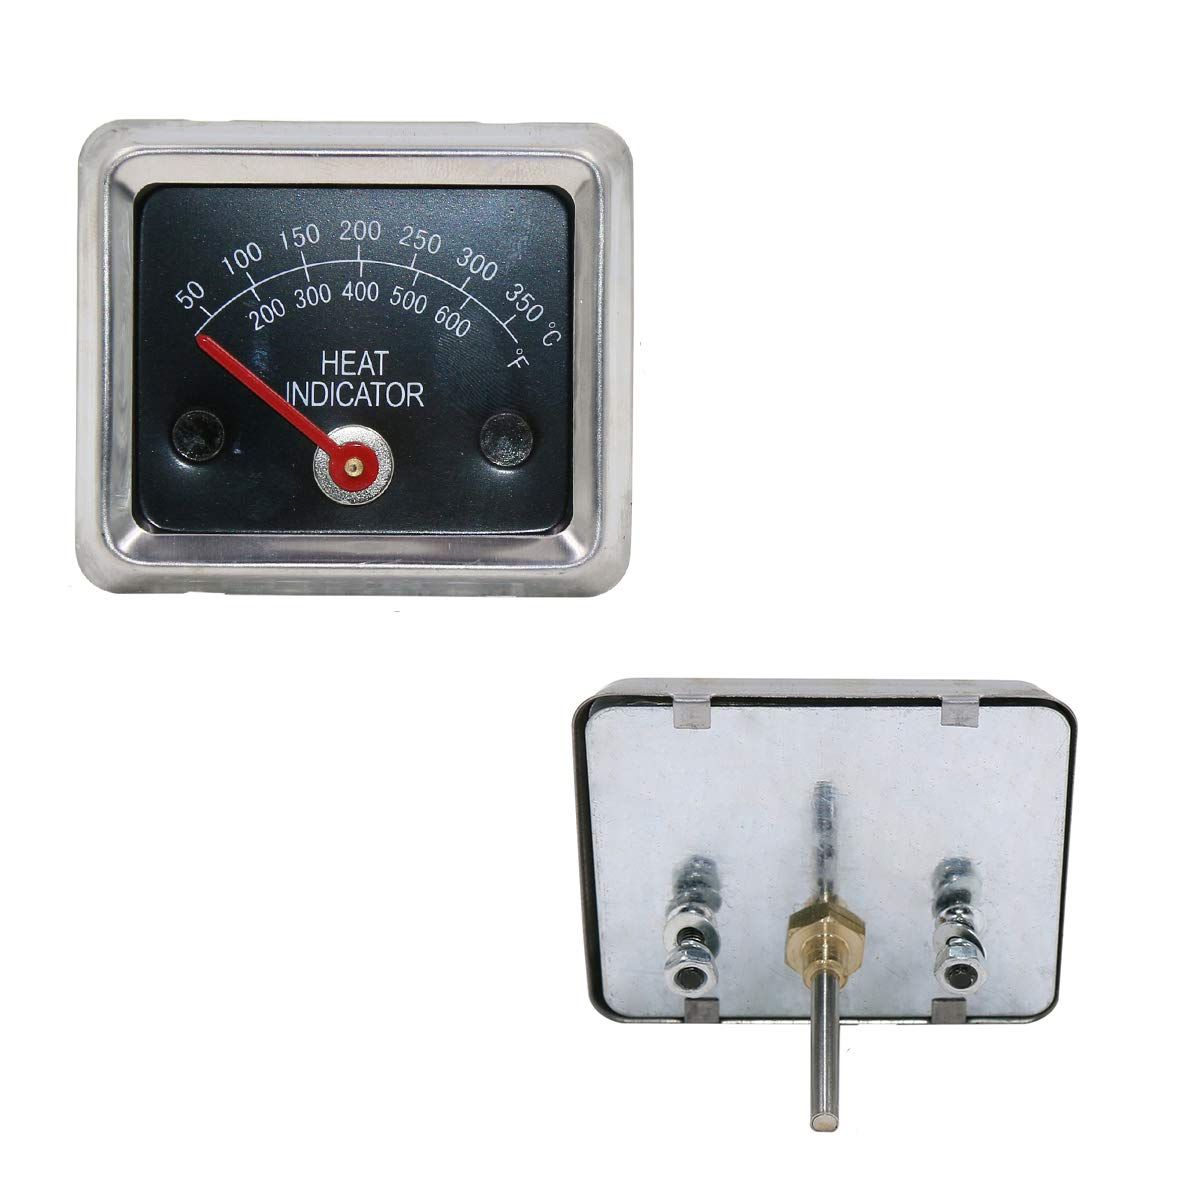 Bar.b.q.s Replacement Stainless Steel Ducane Gas Grill Heat and Temperature Indicator